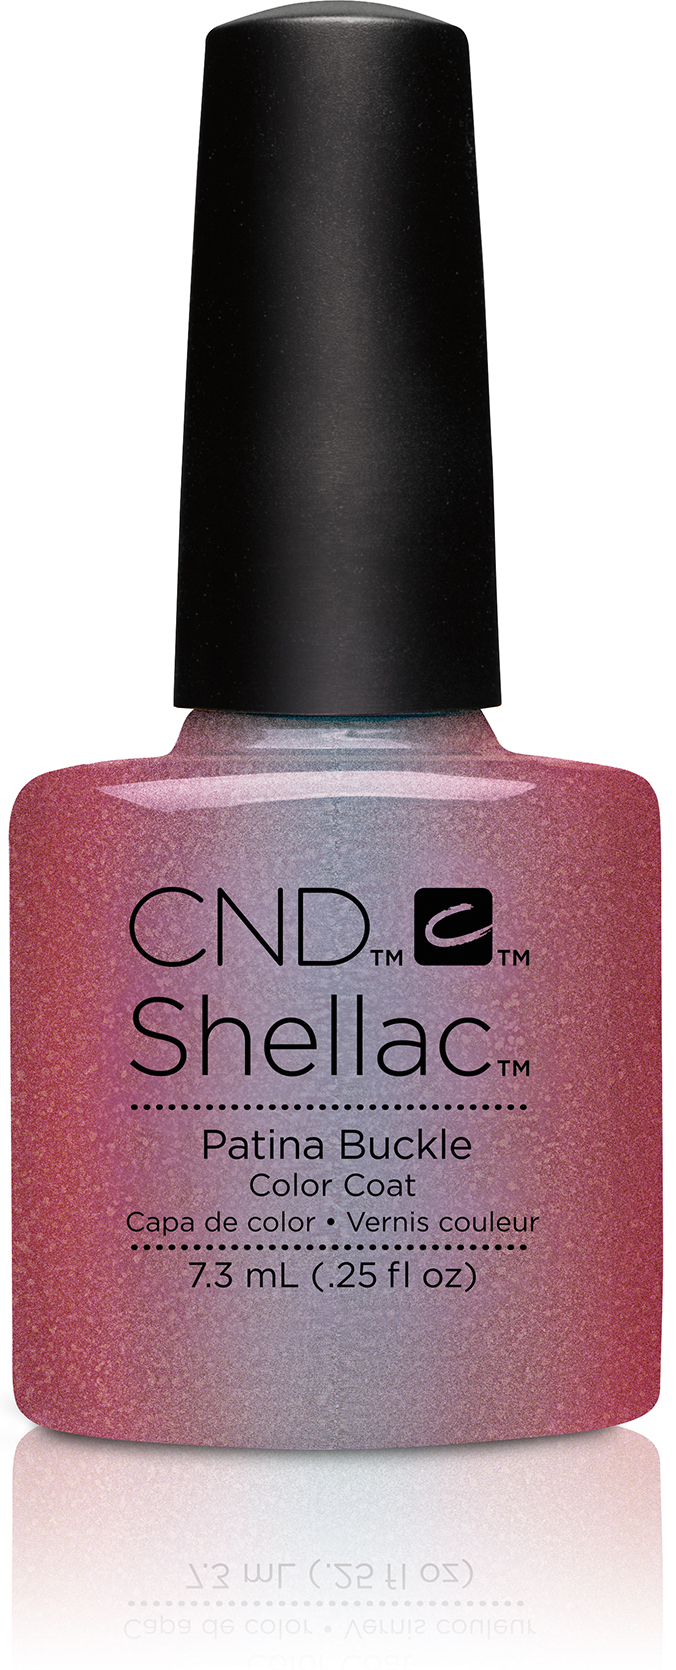 CND Shellac Craft Culture Collection Patina Buckle